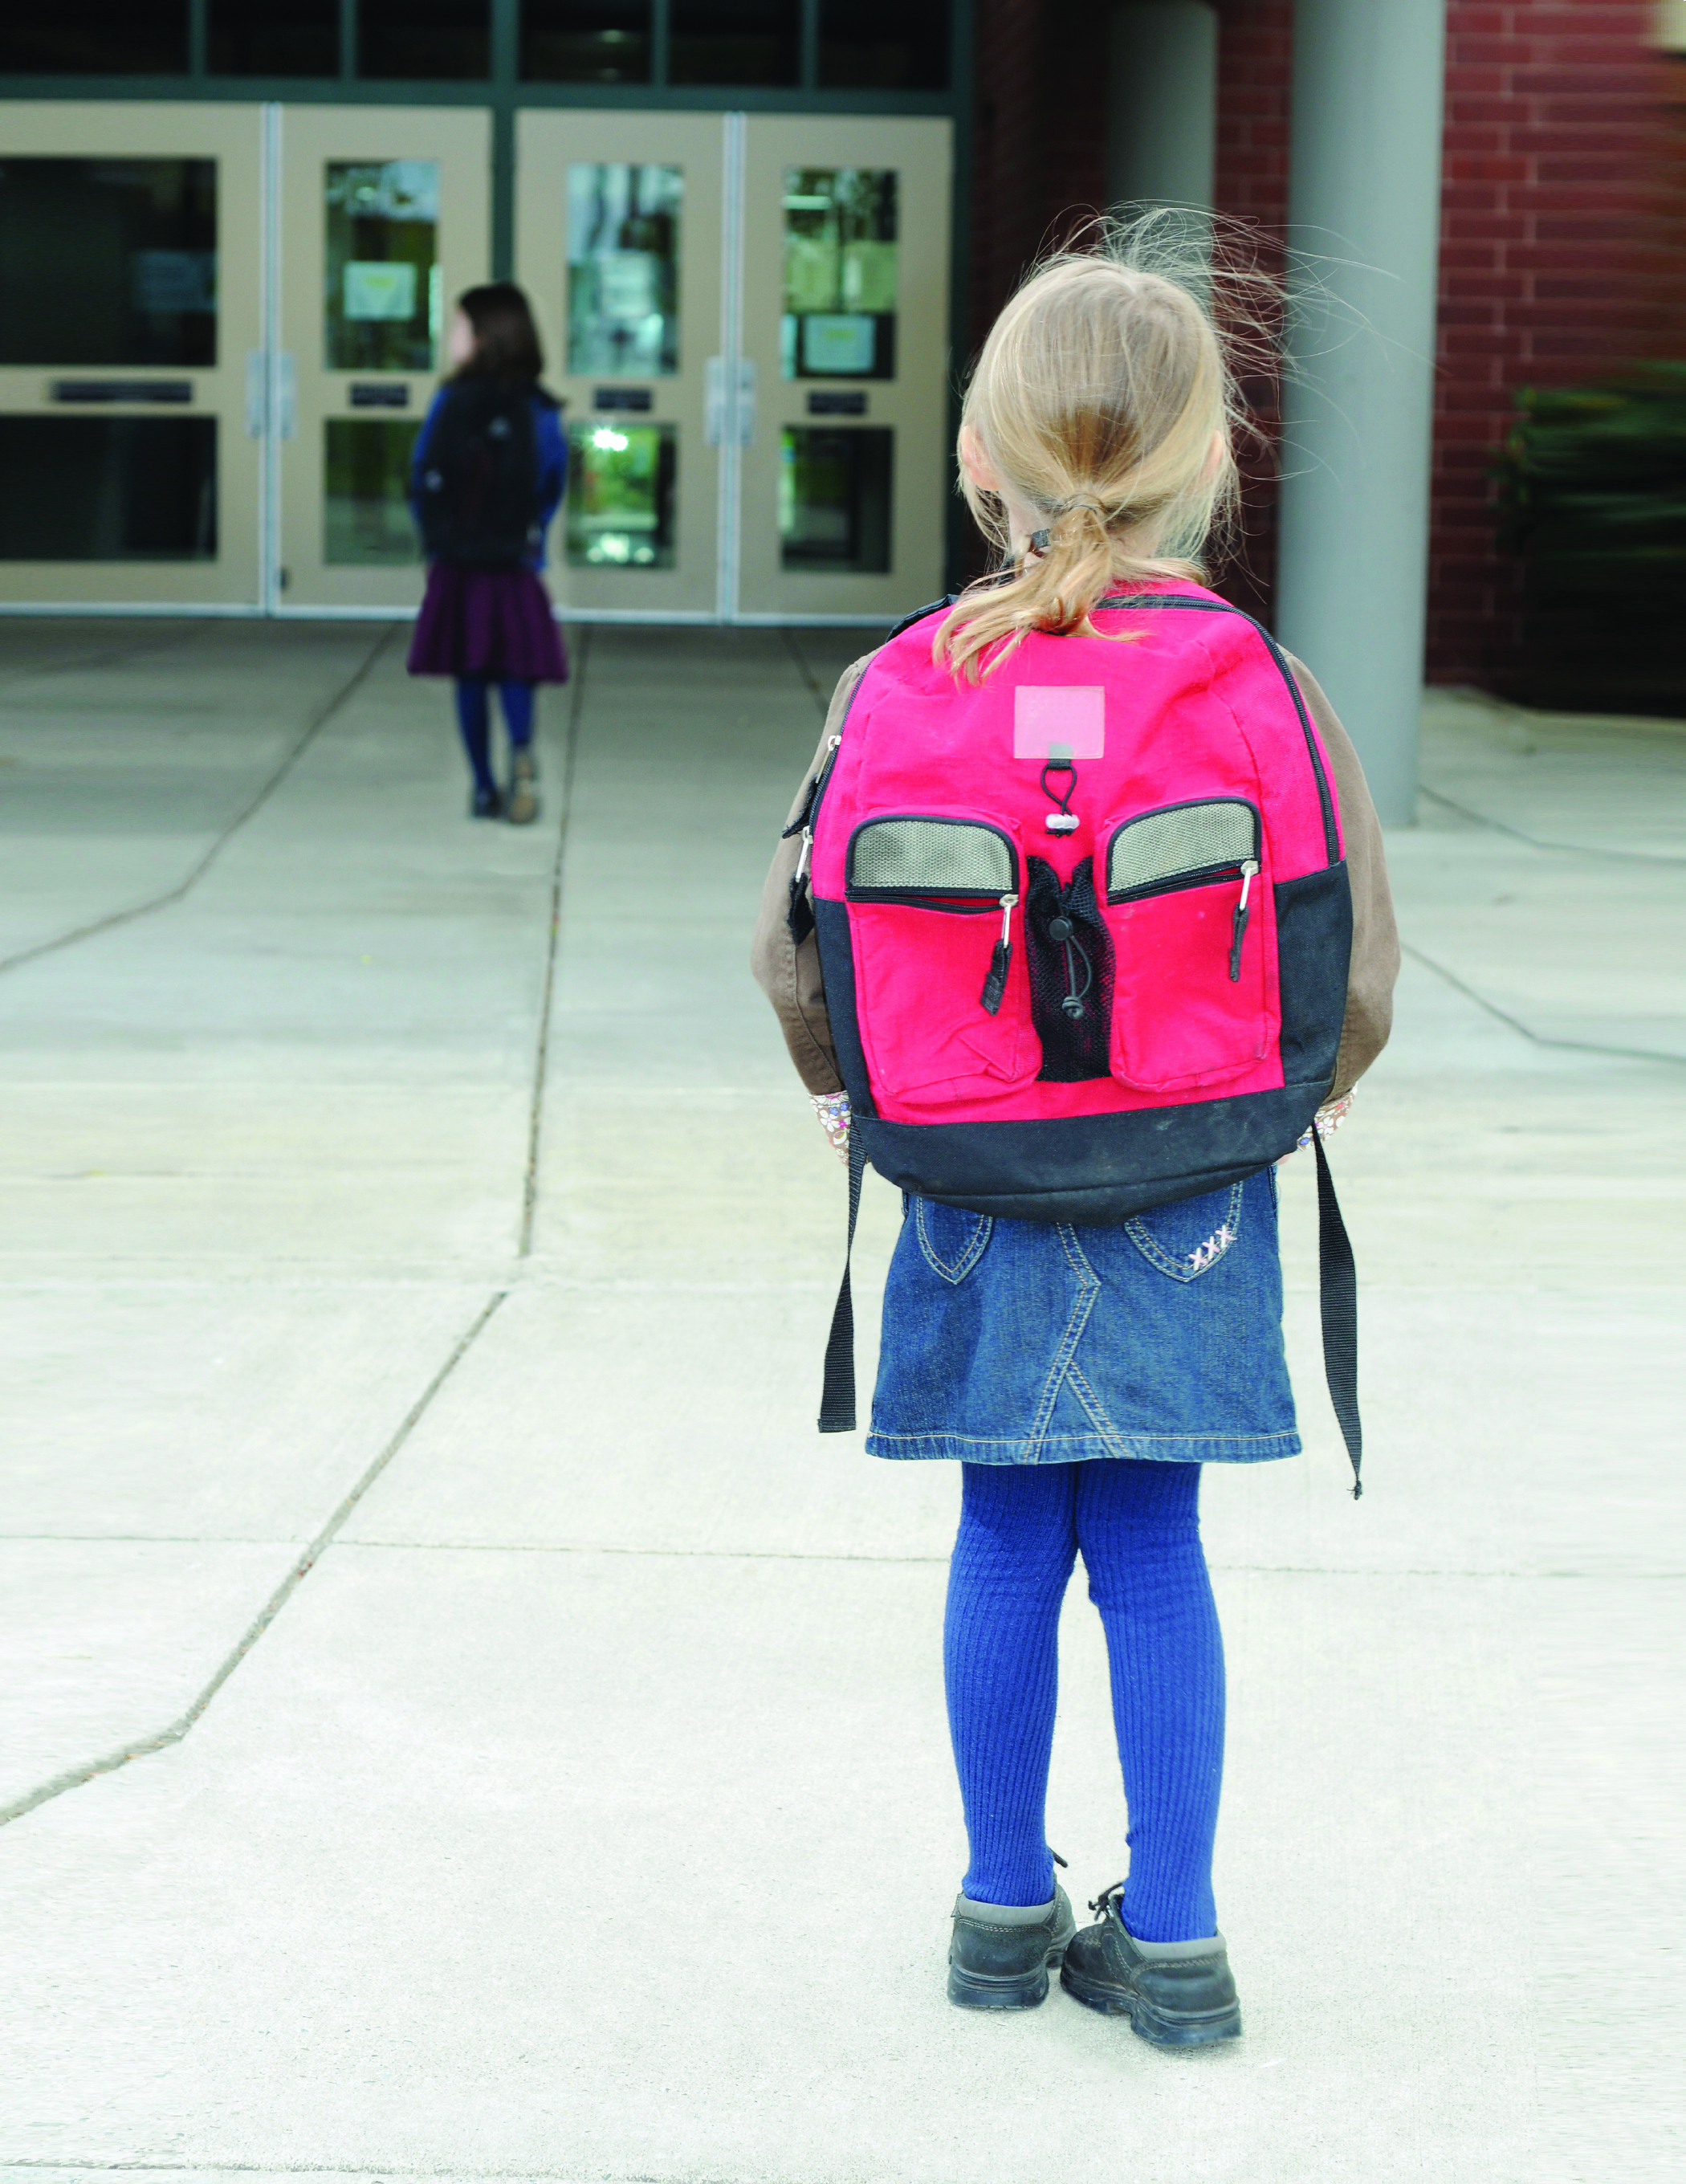 Our area experts help you consider what's most important when picking a school for your child.